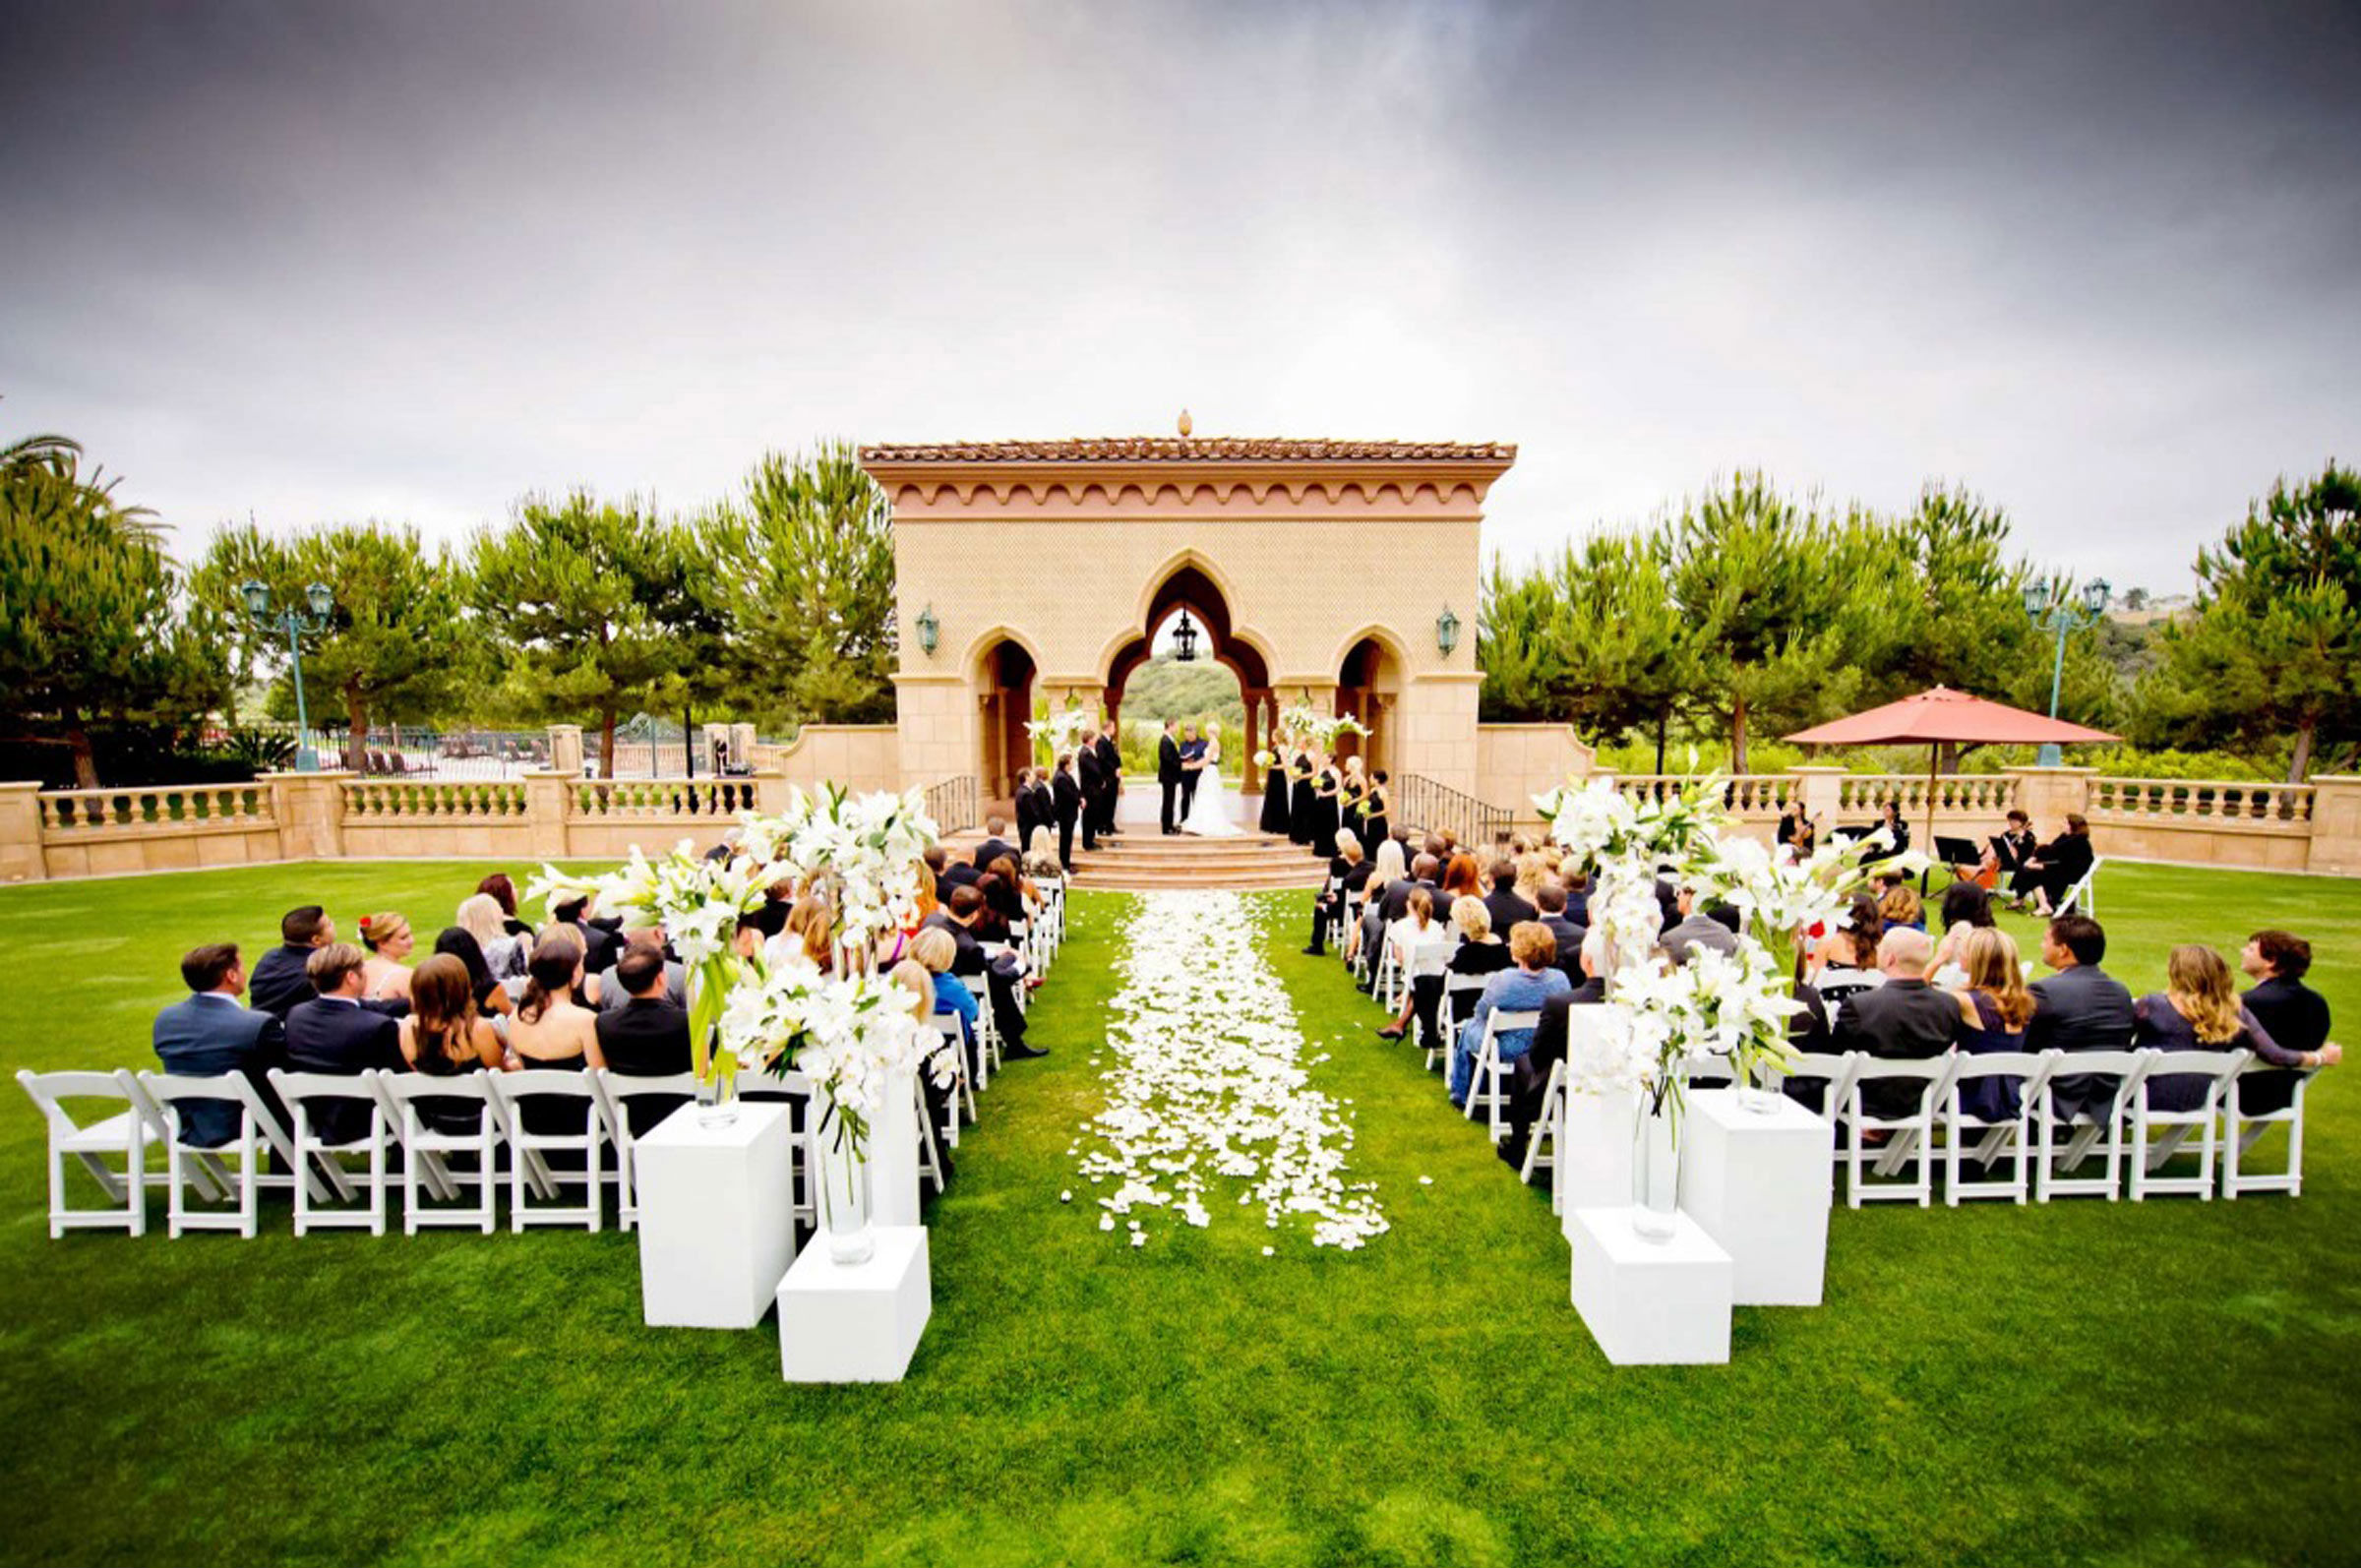 Top north county san diego wedding venues your north county for Top wedding venues in the us